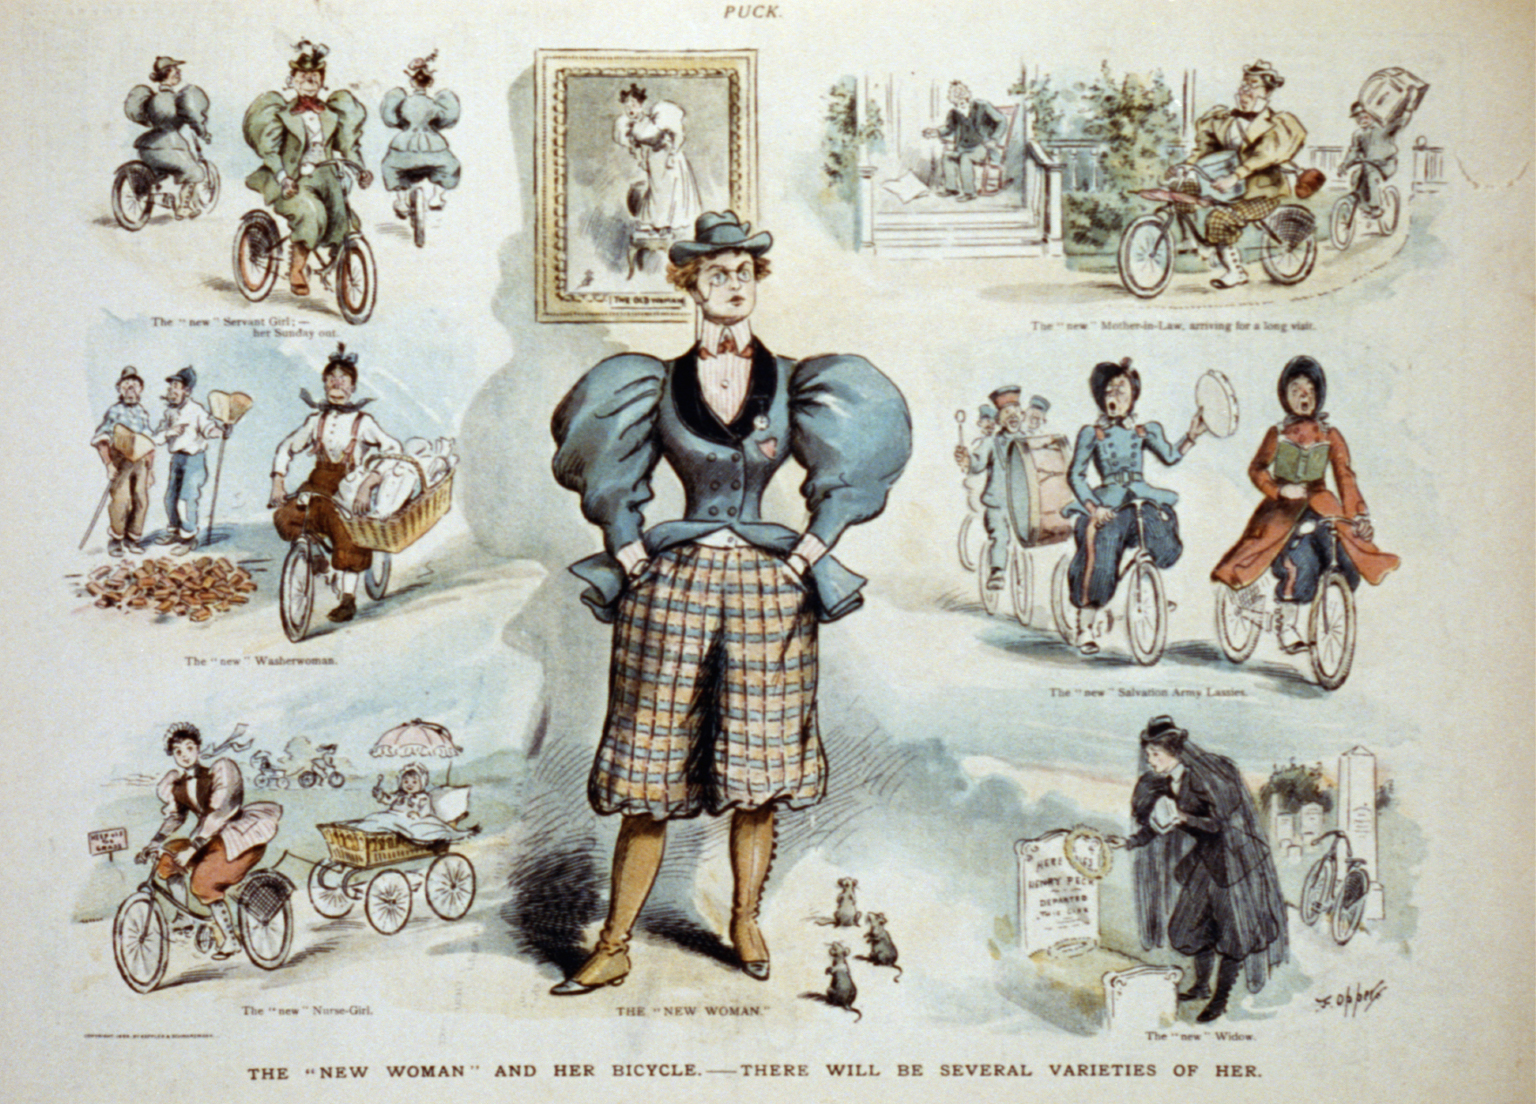 An Illustration from Puck shows  The 'new woman'  standing at center, wearing pantaloons. The surrounding vignettes show women riding bicycles, June 19, 1895.